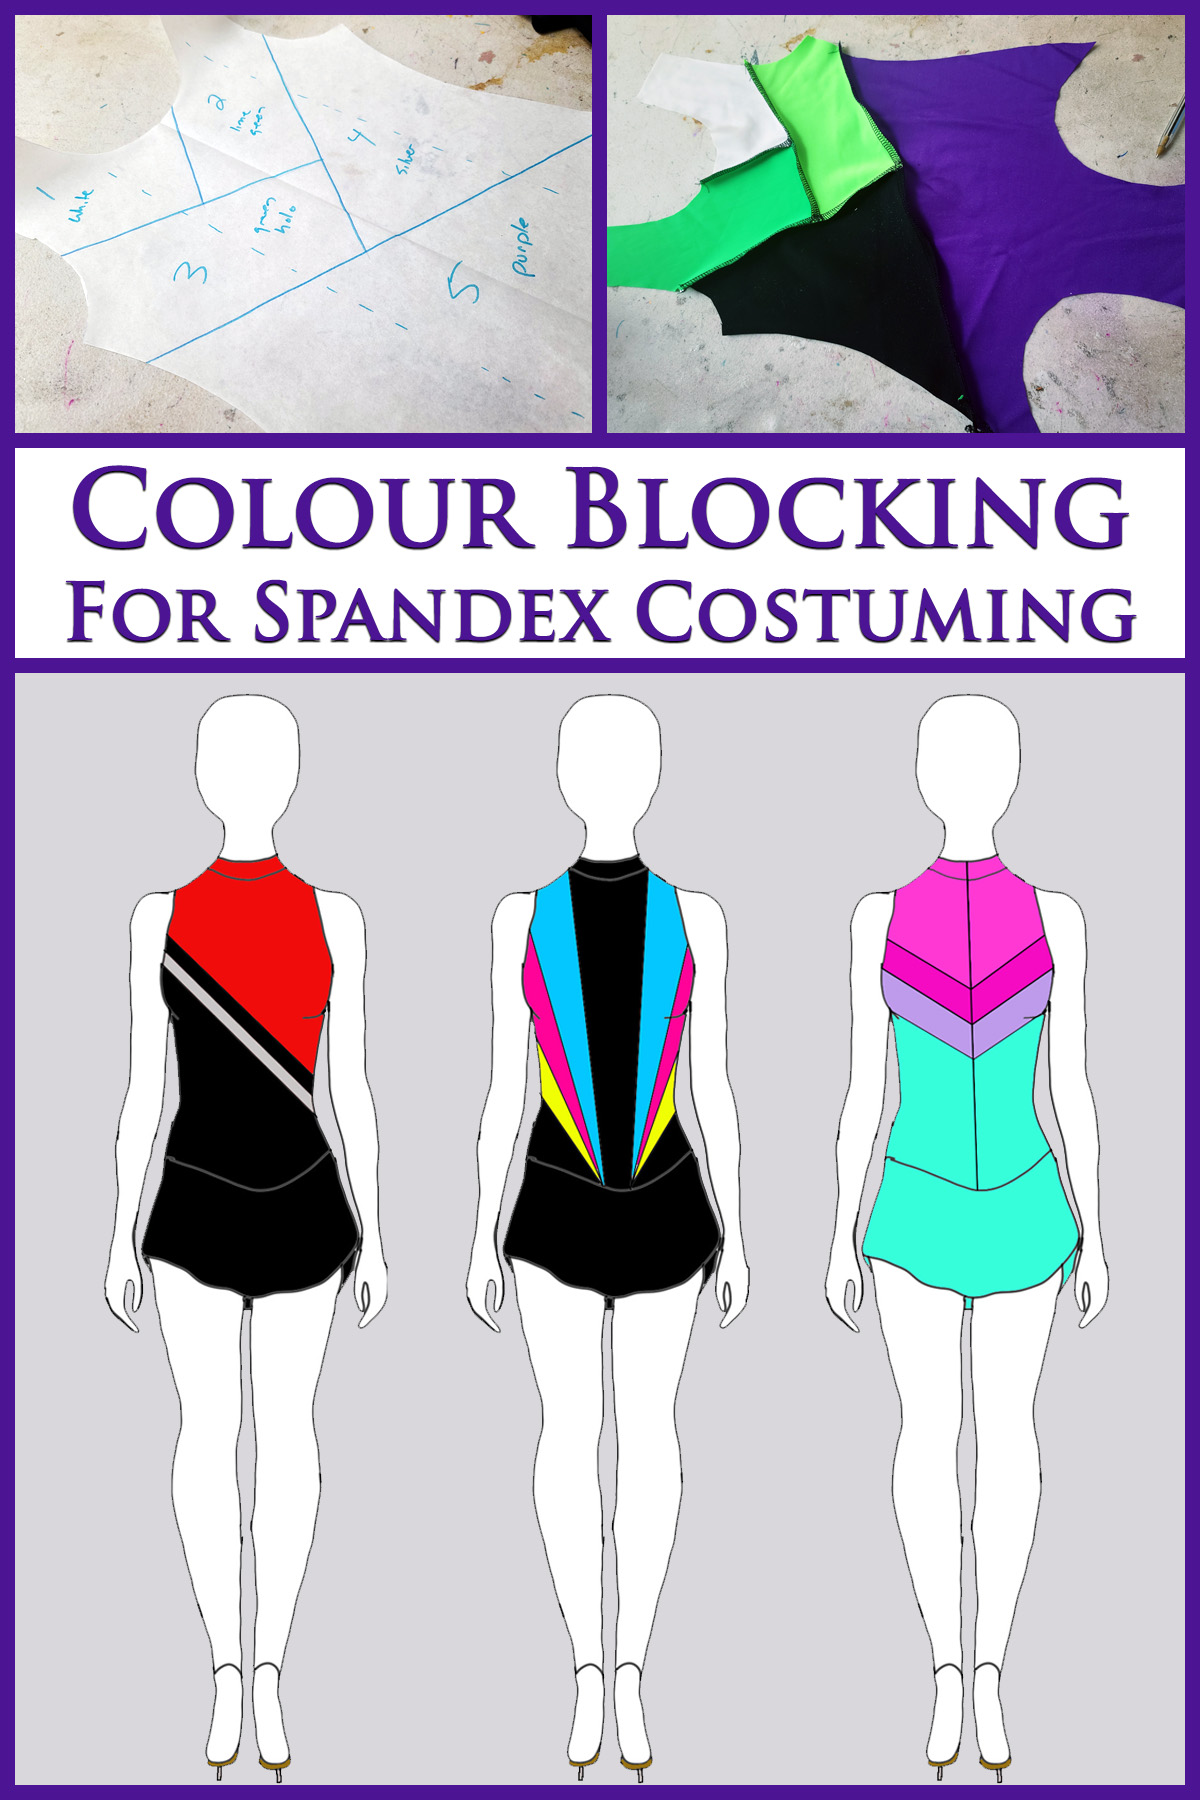 A collage image showing photos and sketches of colour blocking. Purple text says Colour Blocking for Spandex Costuming.